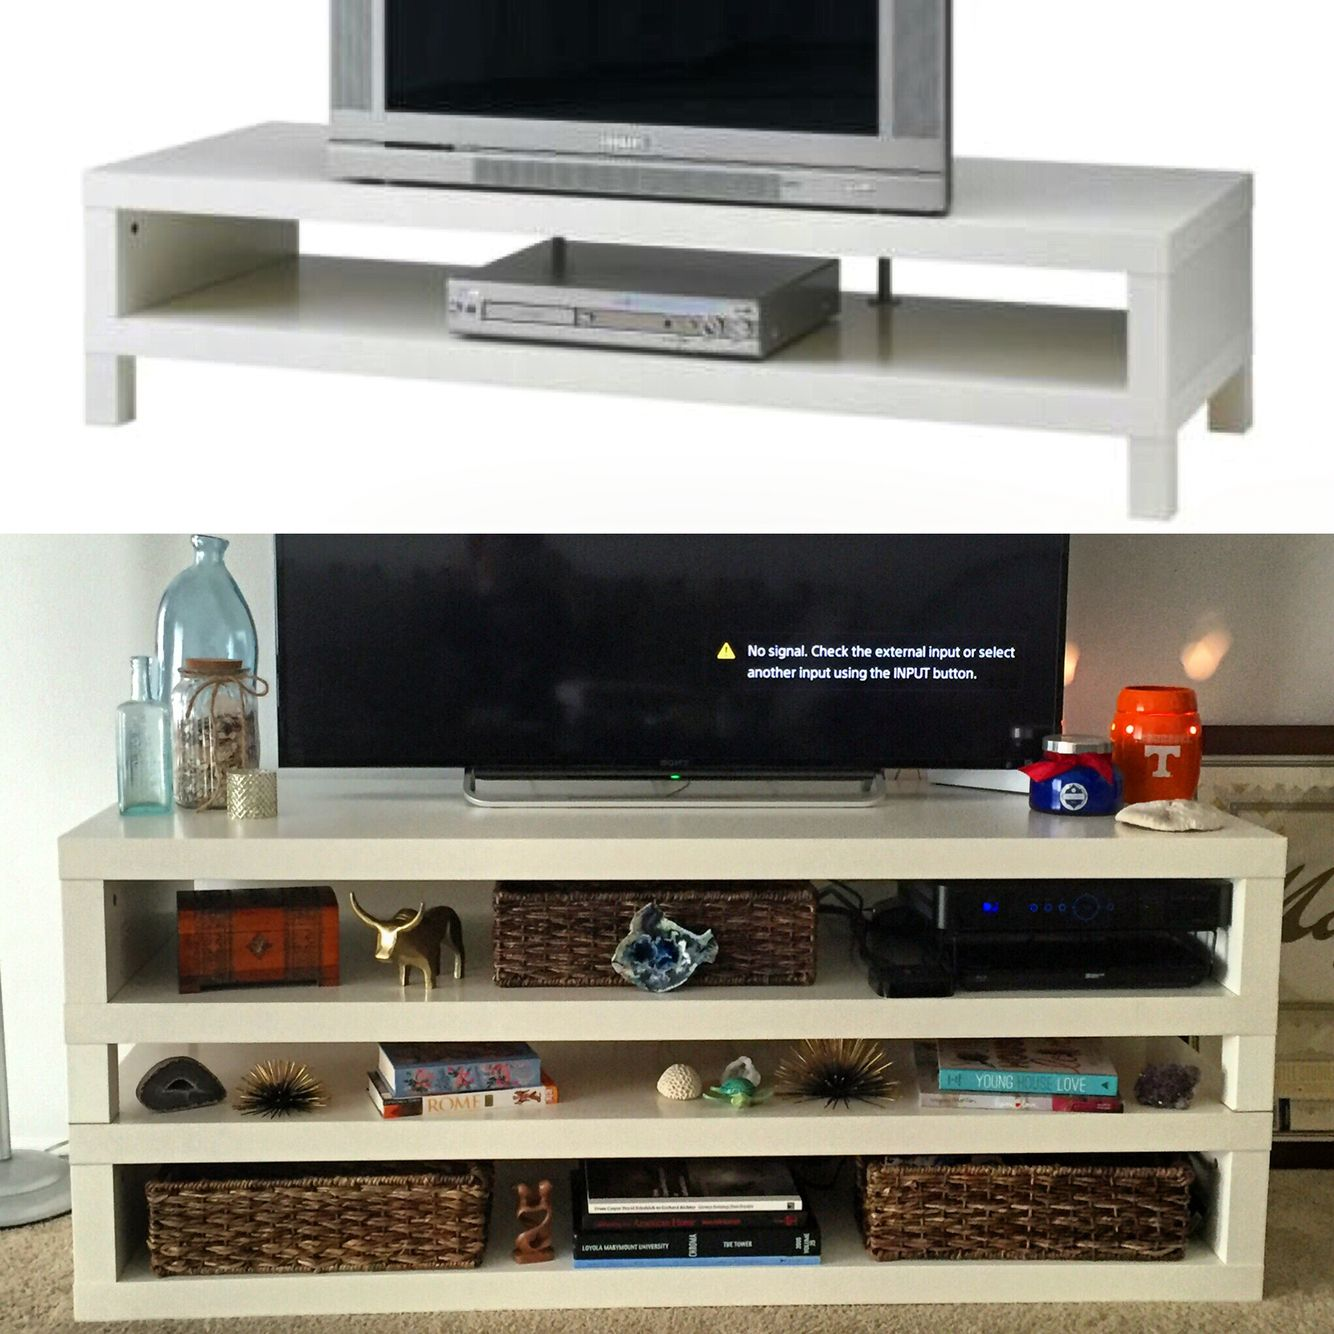 Hacking By Stacking Ikea Lack Tv Unit Hack For A Higher Profile